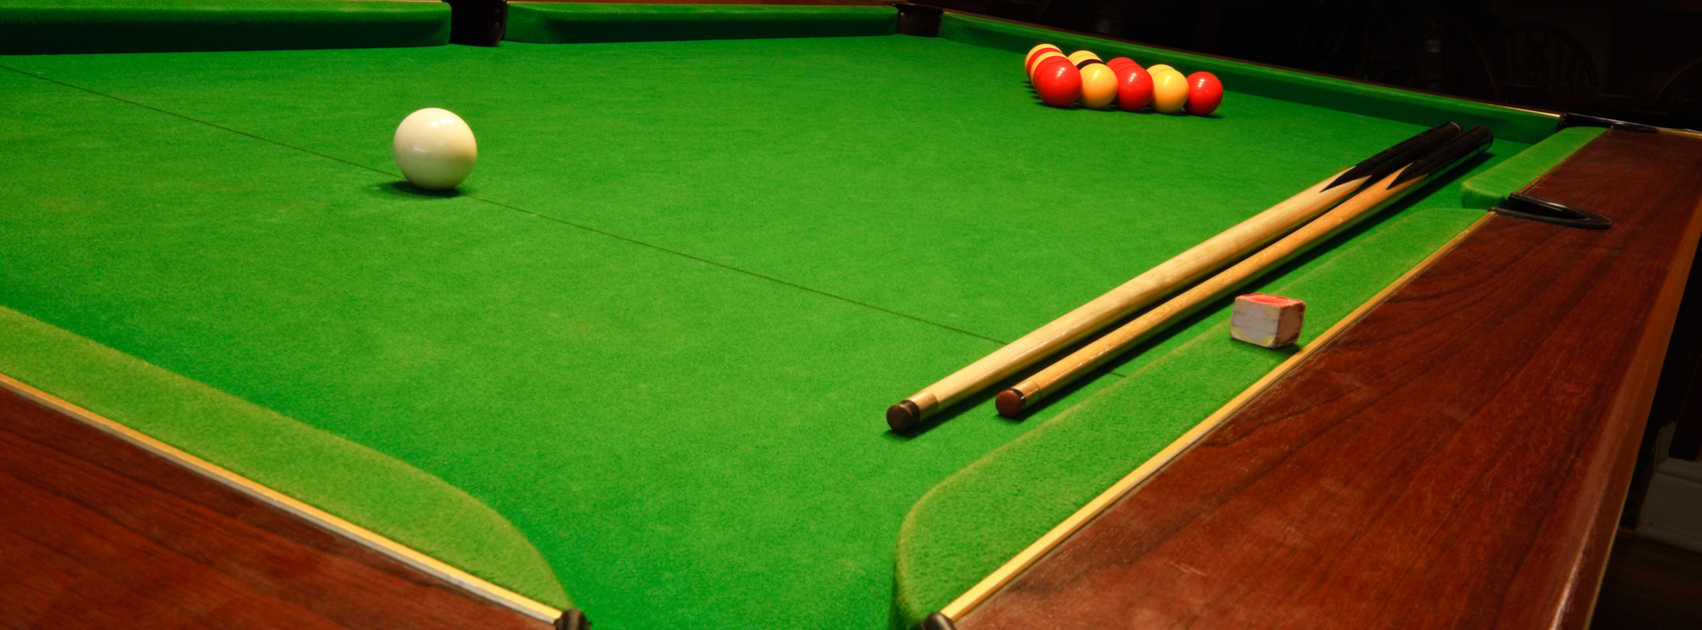 learn to get better at pool